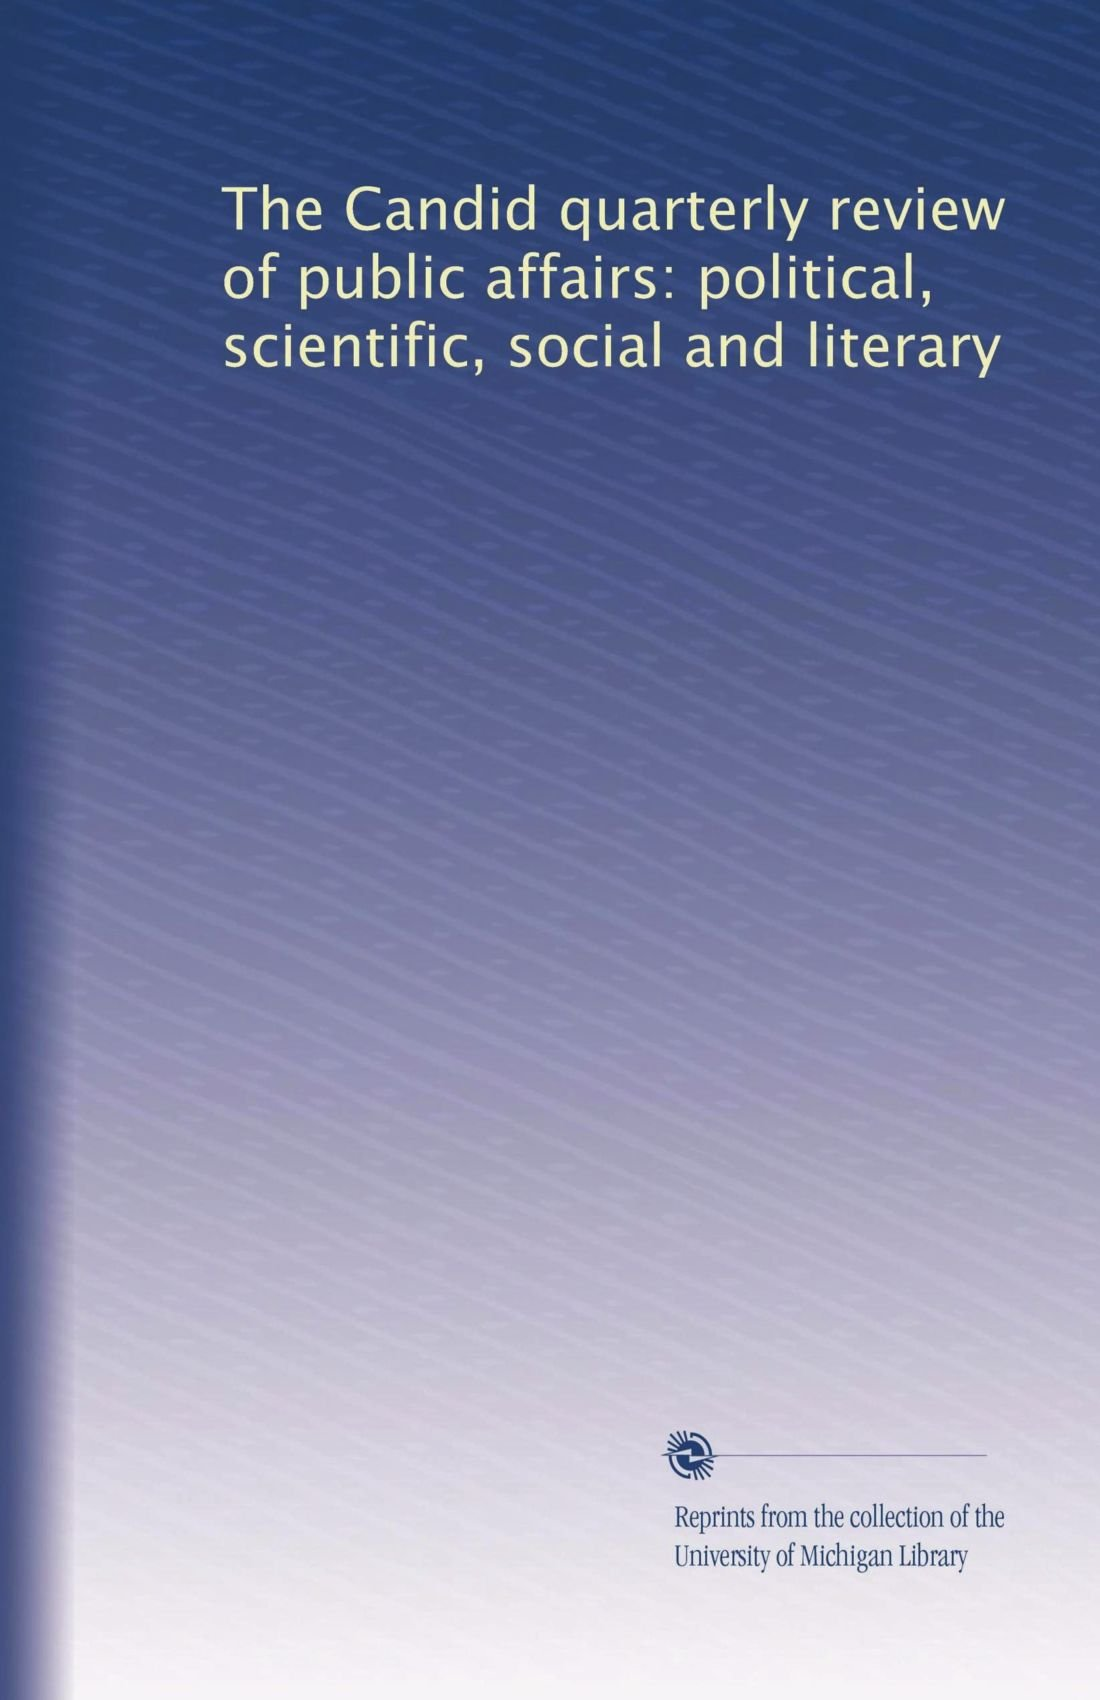 The Candid quarterly review of public affairs: political, scientific, social and literary pdf